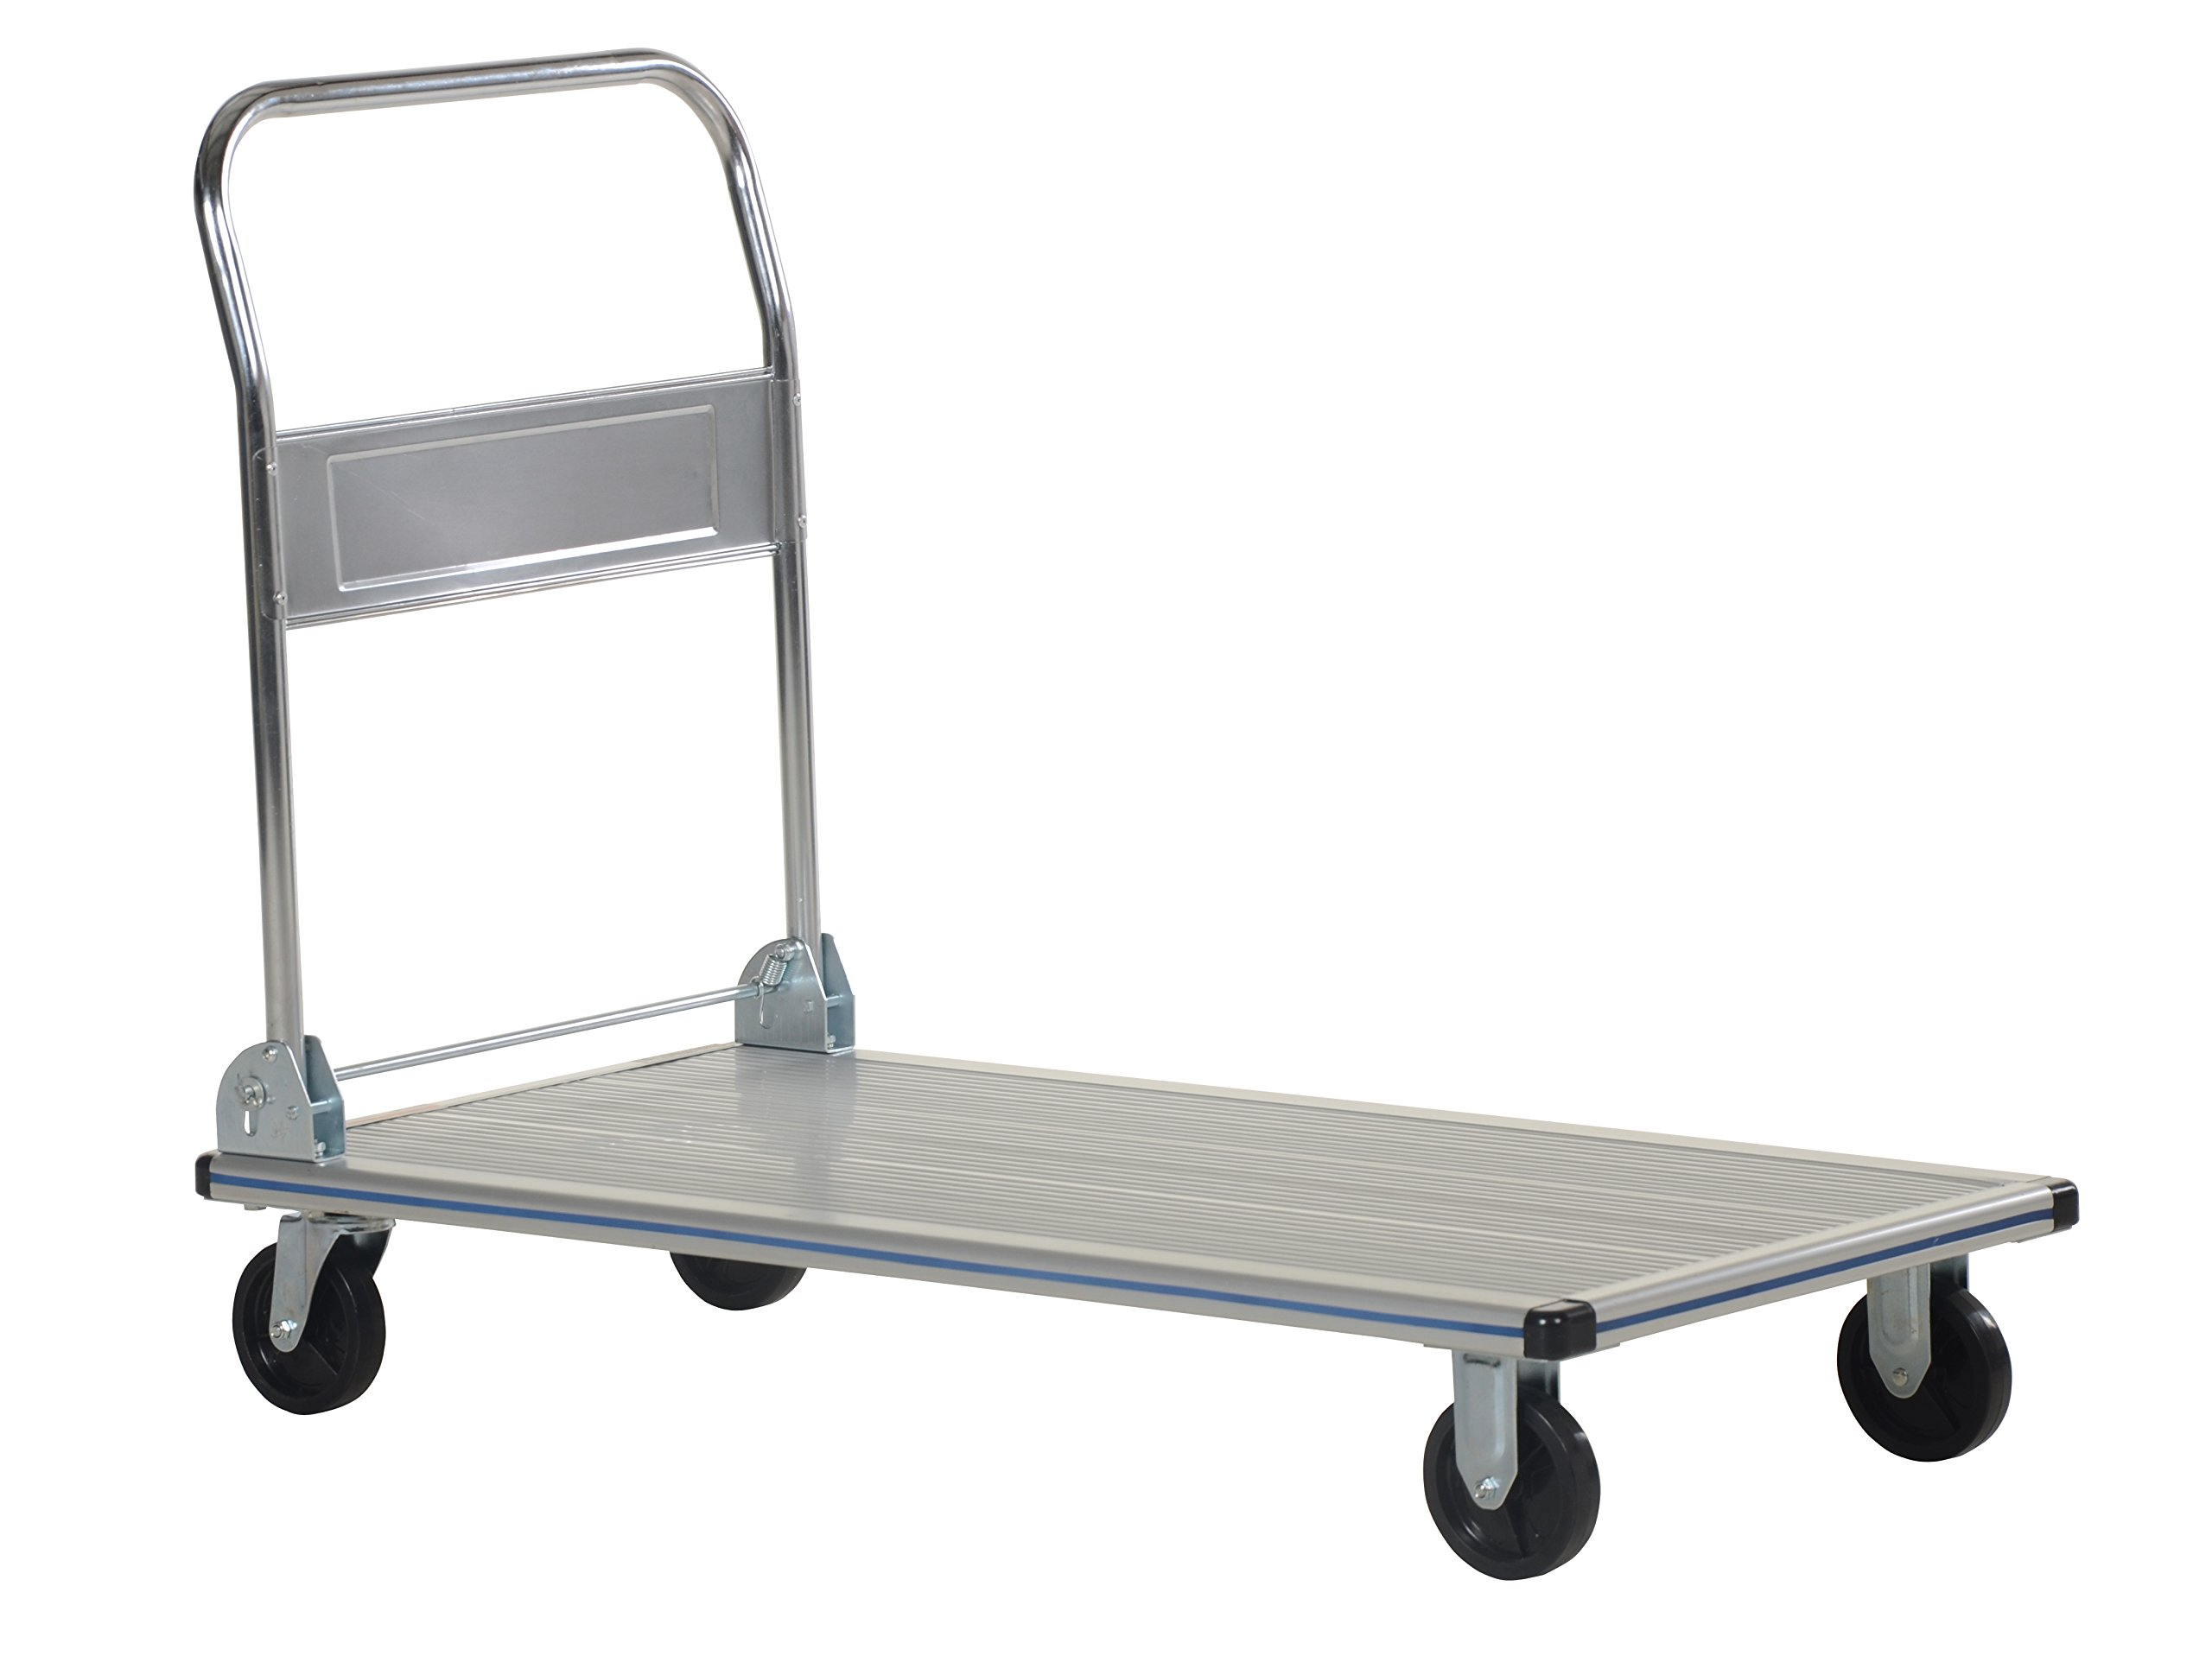 Vestil AFT-48-NM Aluminum Folding Platform Truck with Single Handle and 5'' Non-Marking Polyurethane Casters, 600 lbs Capacity, 48'' Length x 24'' Width x 8-3/8'' Height